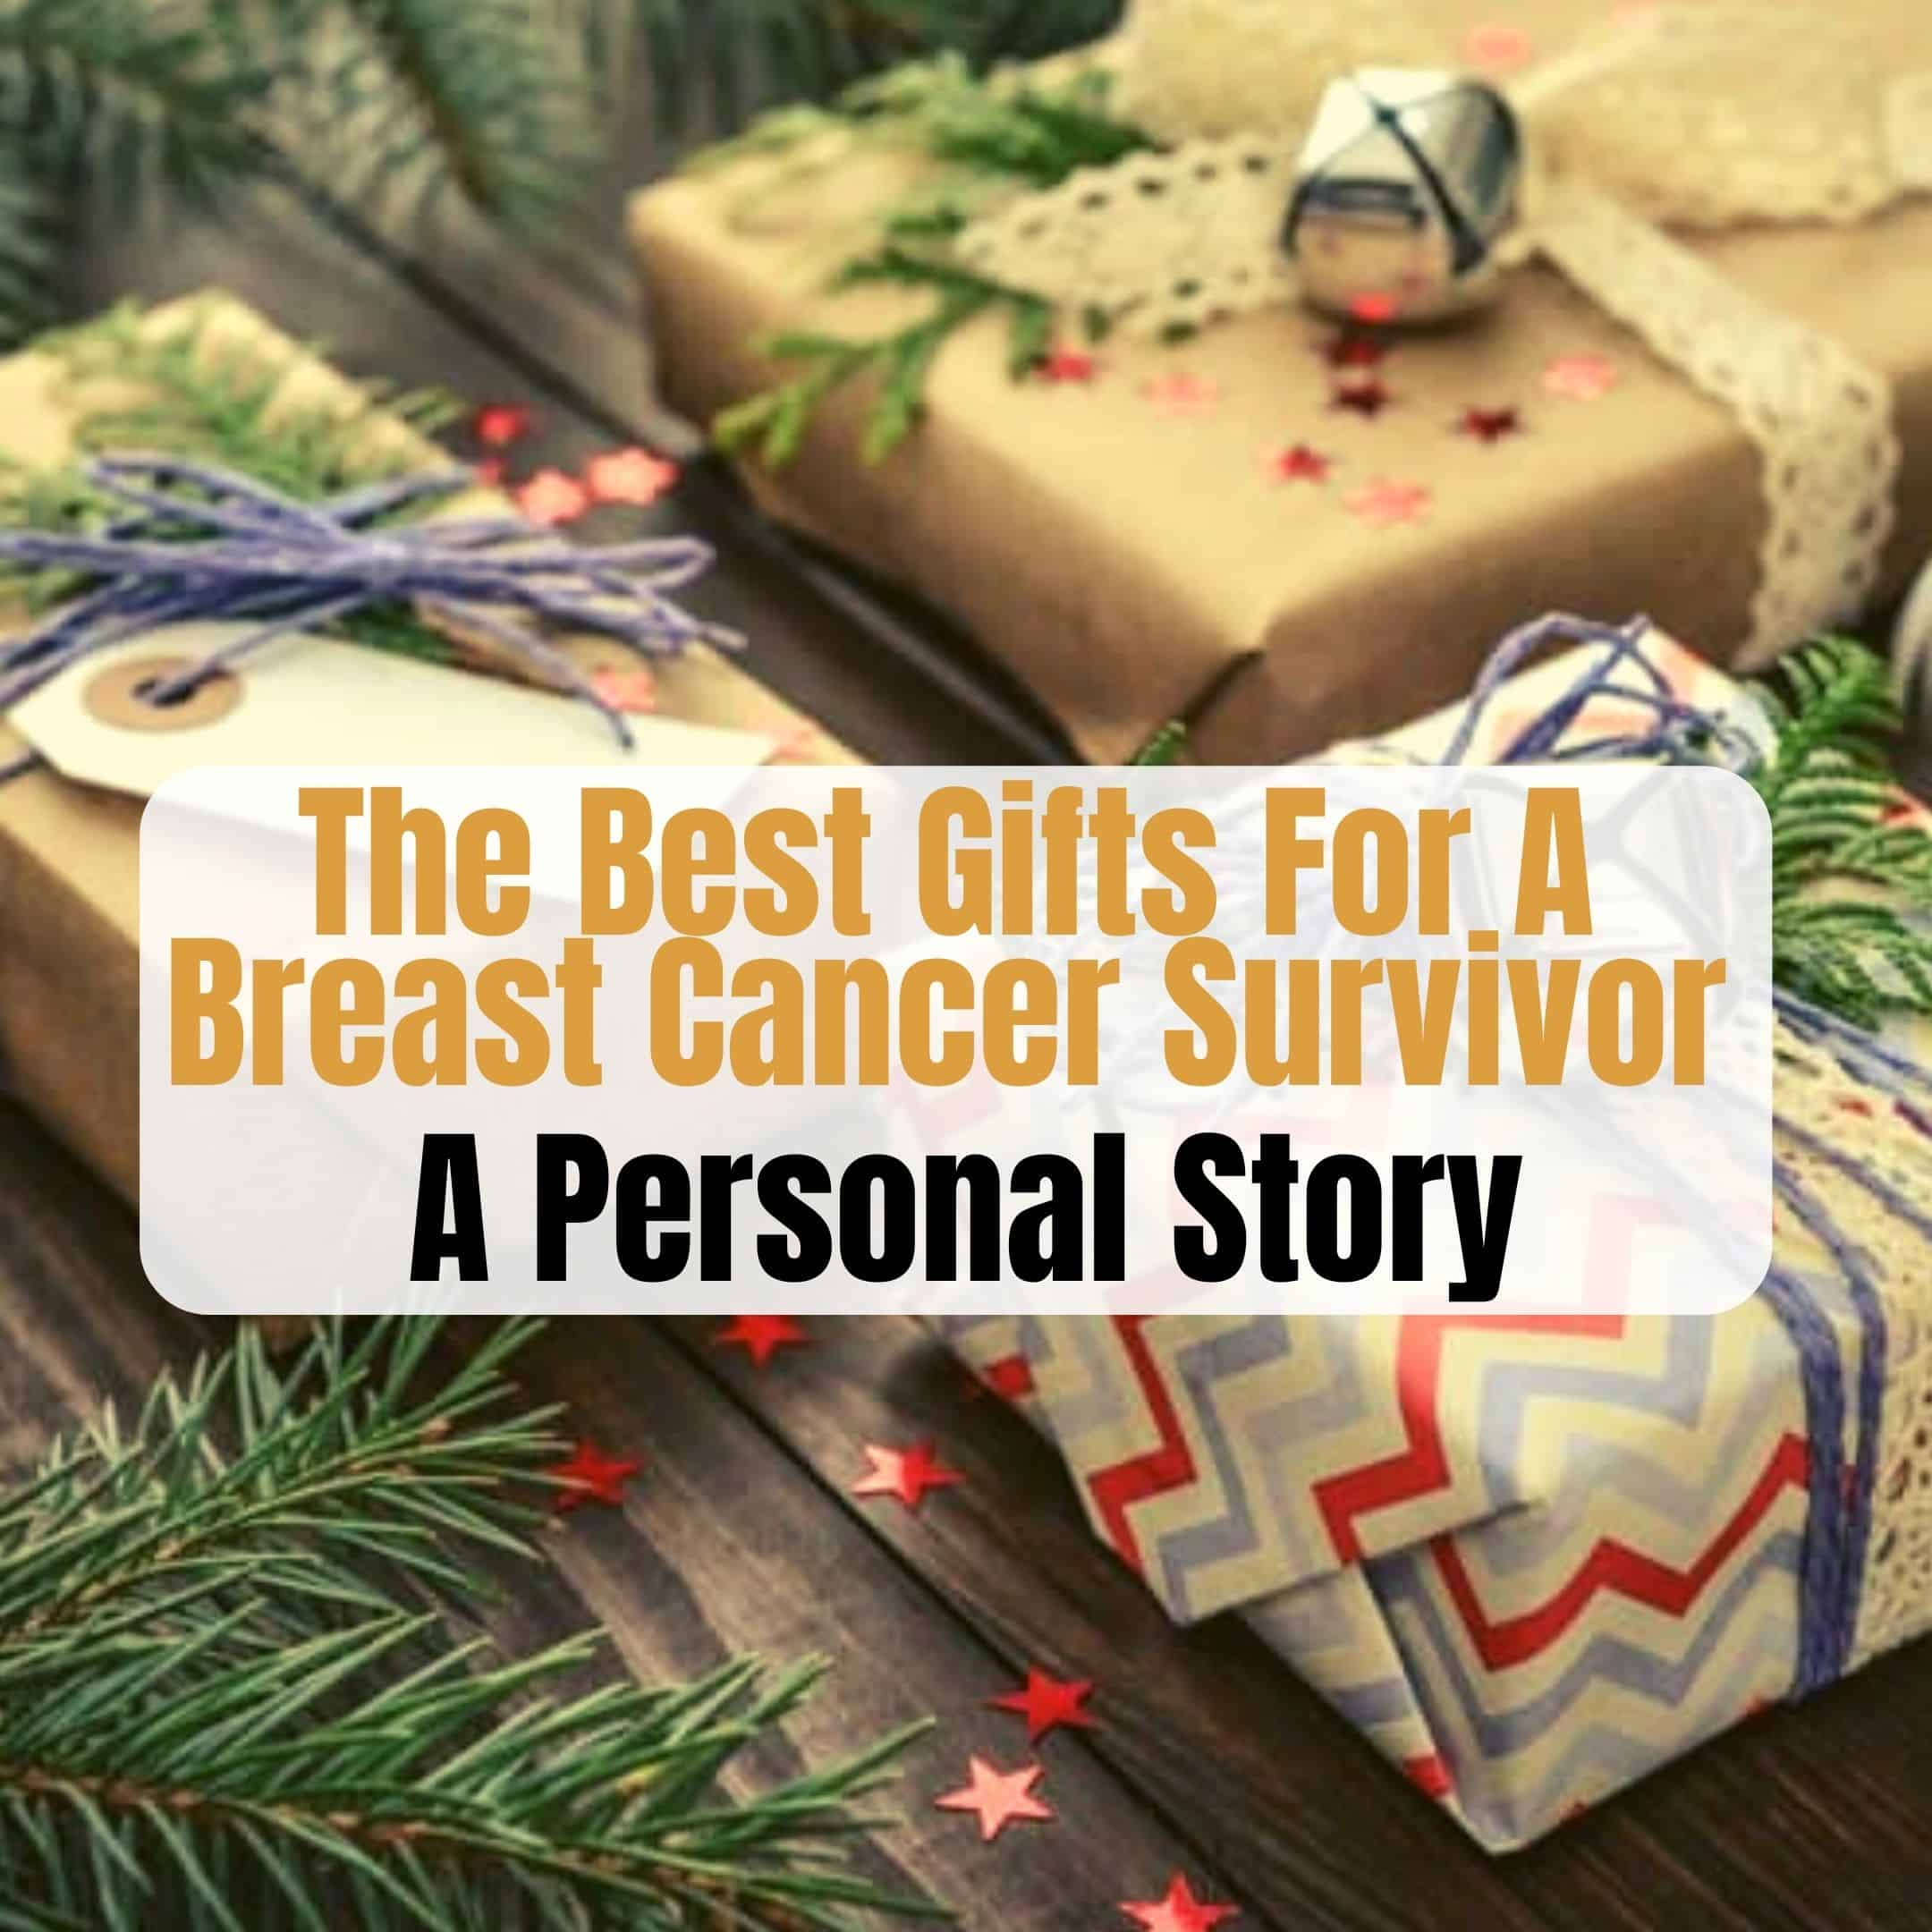 Three Great Gifts: The Best Gifts For A Breast Cancer Survivor – A Personal Story